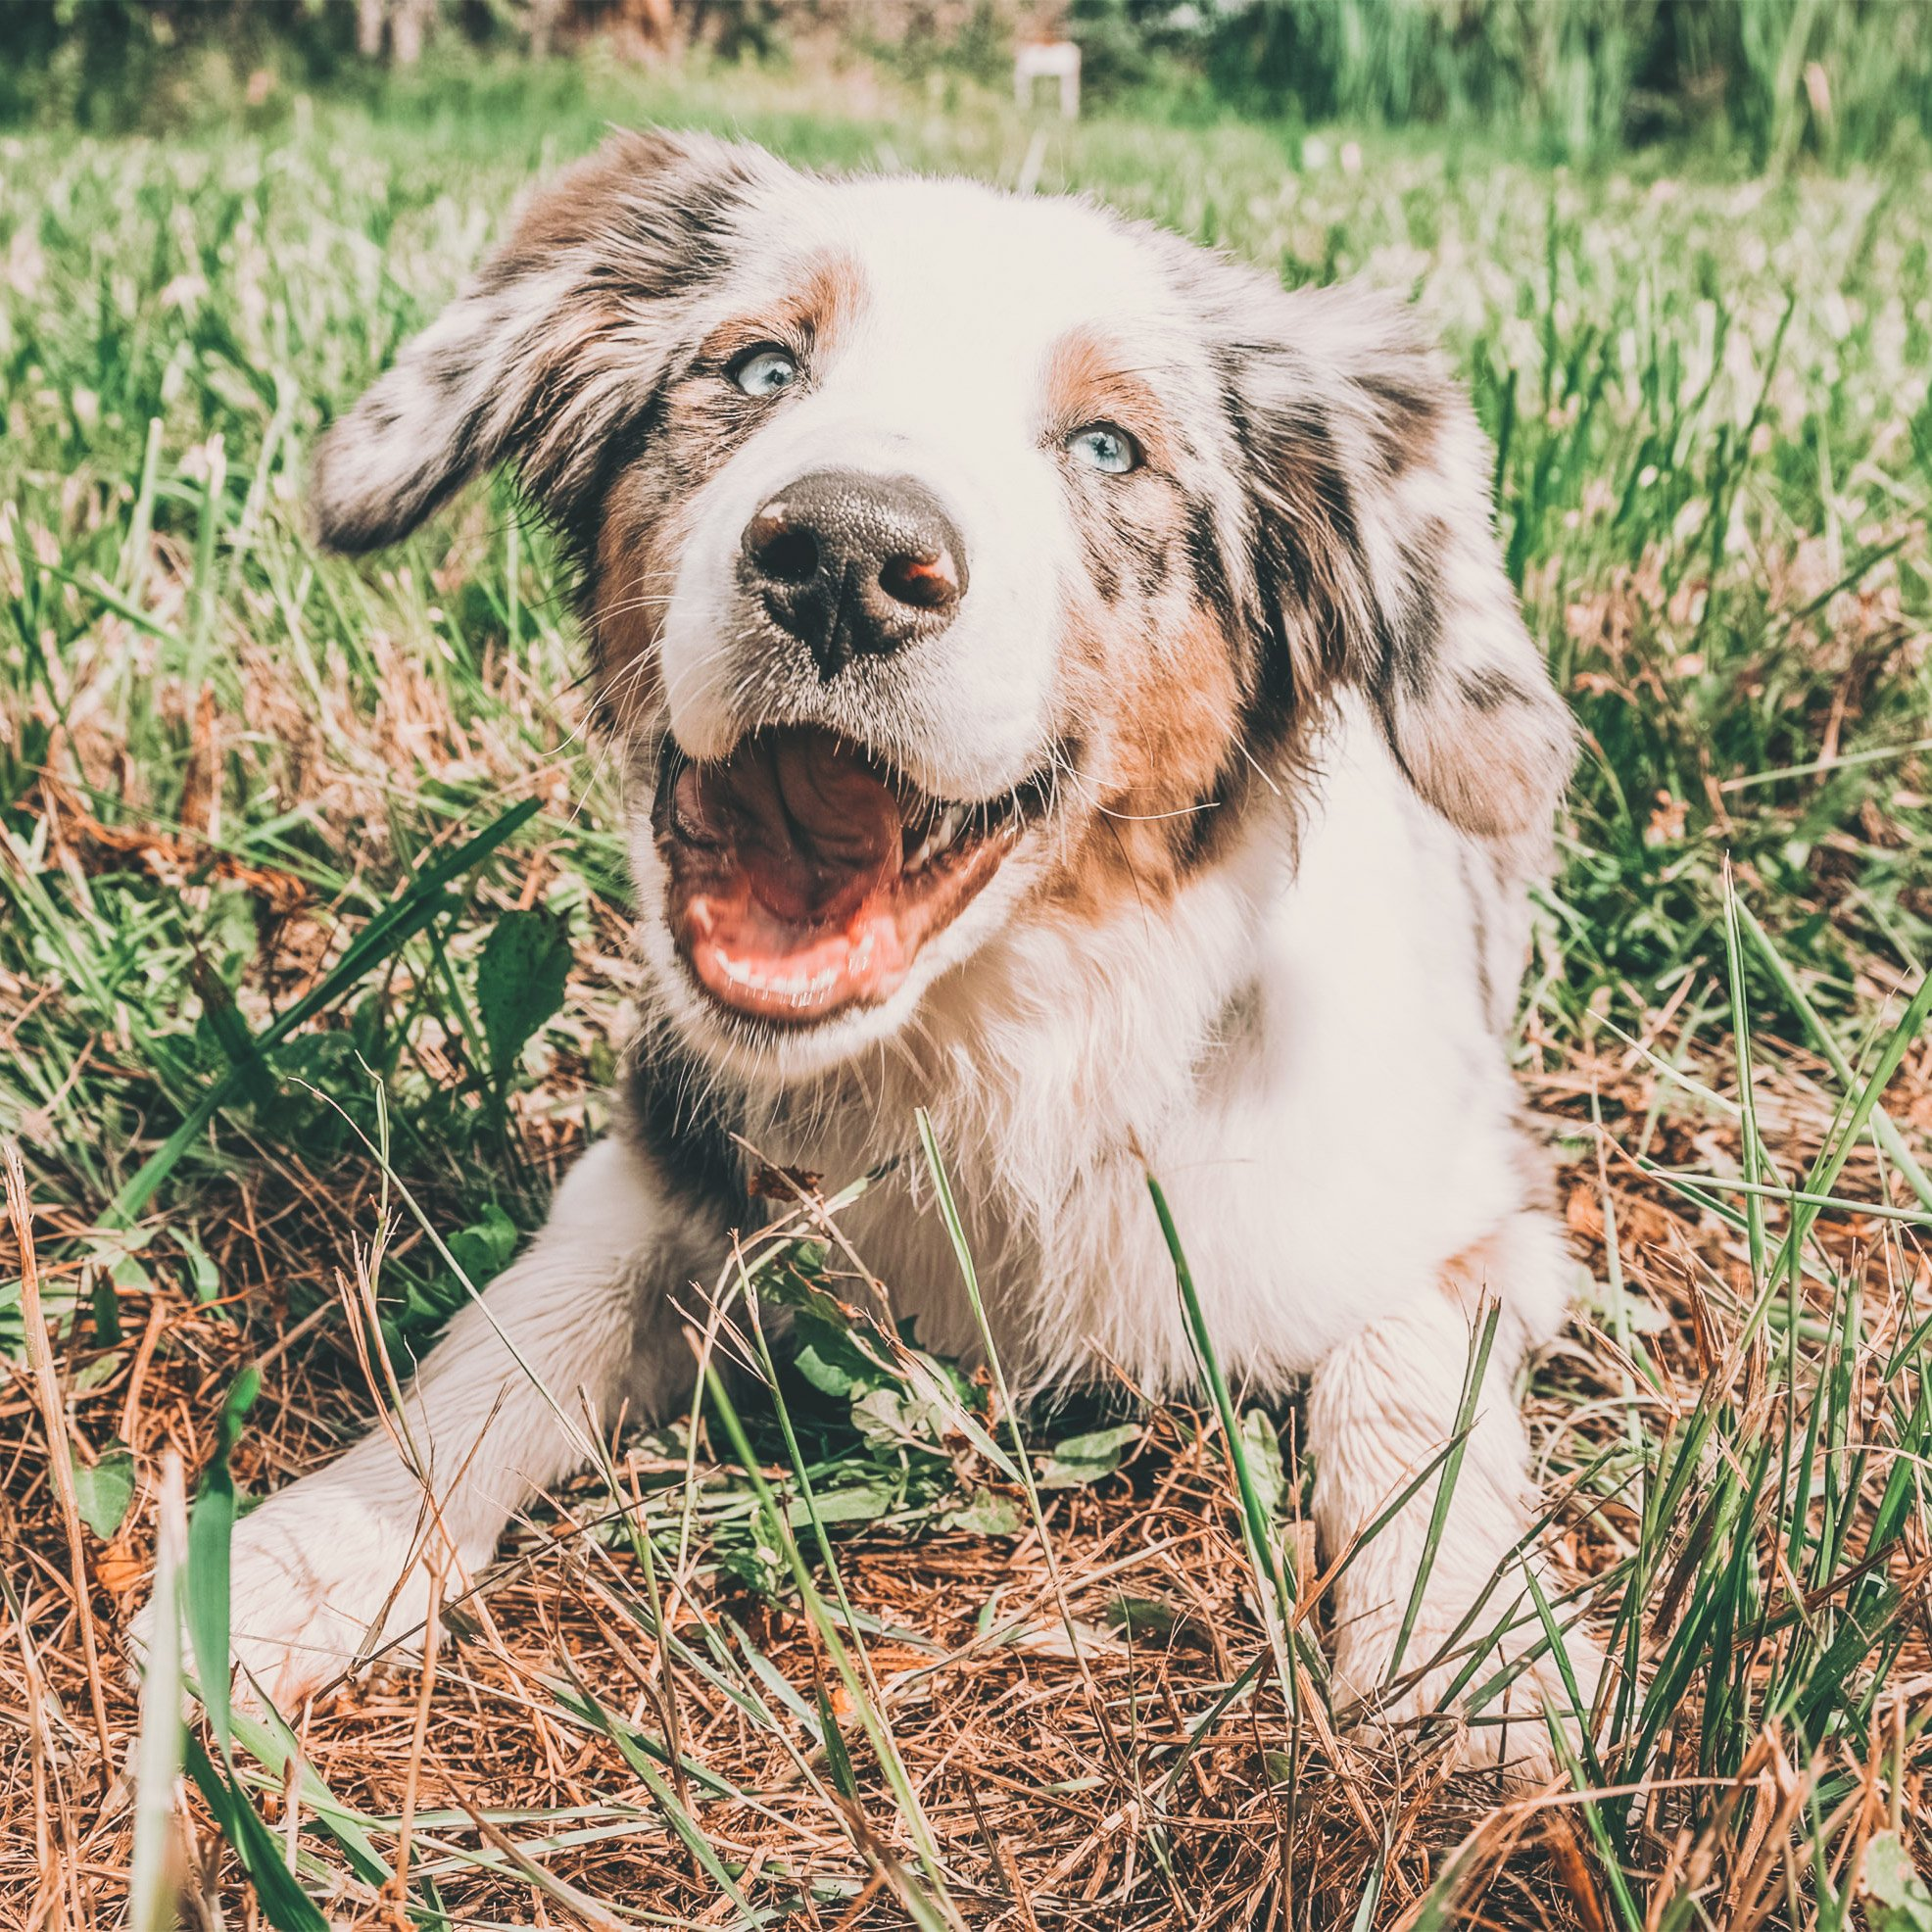 Dog with tongue out, laying in the grass